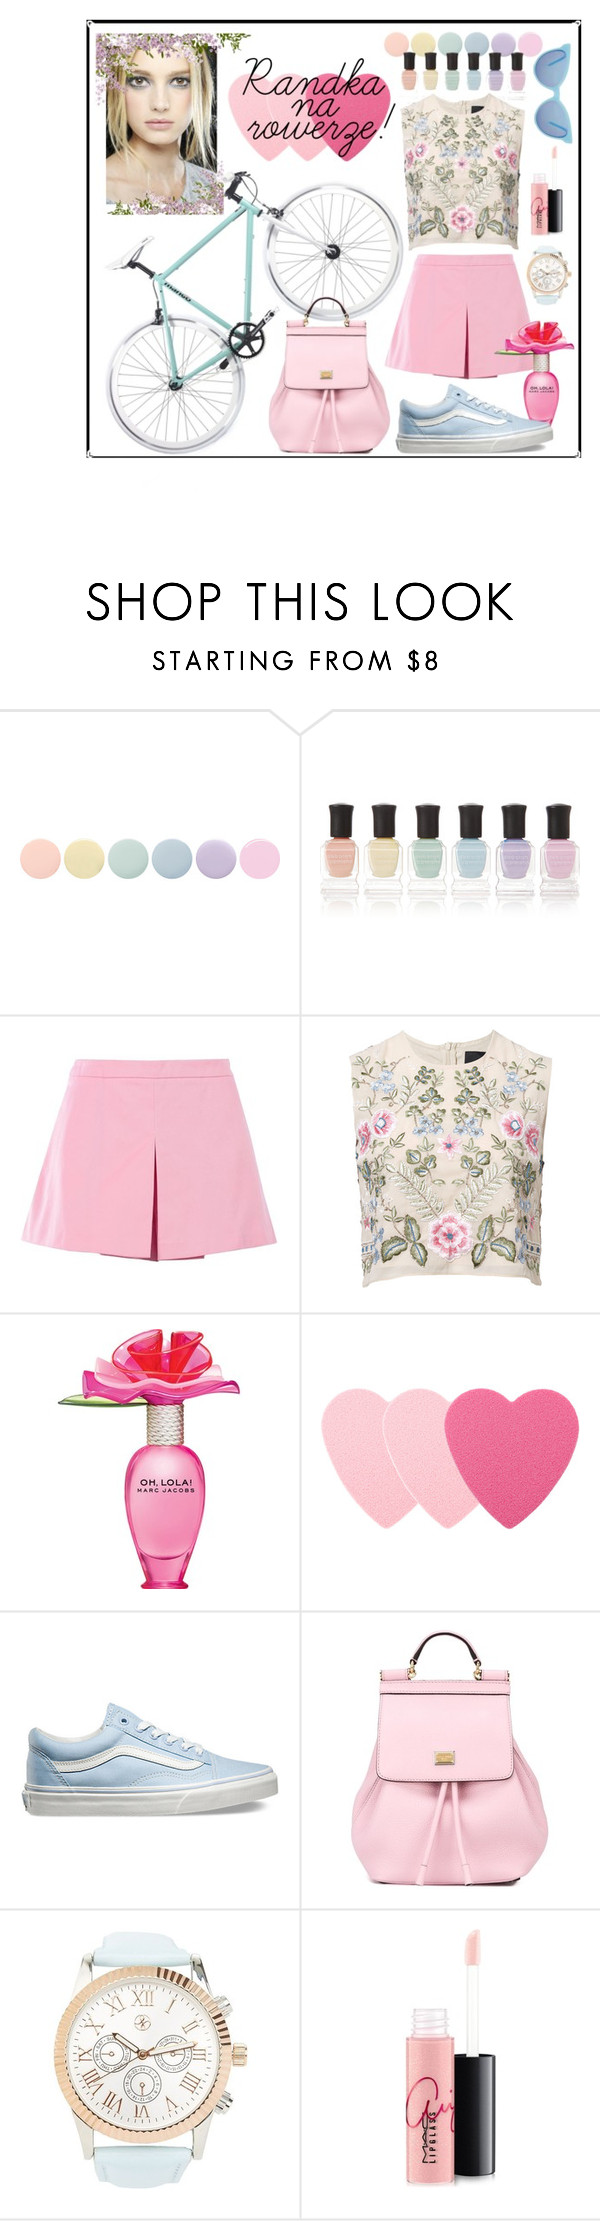 """""""Bicycle date"""" by vea89 ❤ liked on Polyvore featuring Deborah Lippmann, Love Moschino, Needle & Thread, Marc Jacobs, Sephora Collection, Vans, Dolce&Gabbana, Charlotte Russe, MAC Cosmetics and Wildfox"""